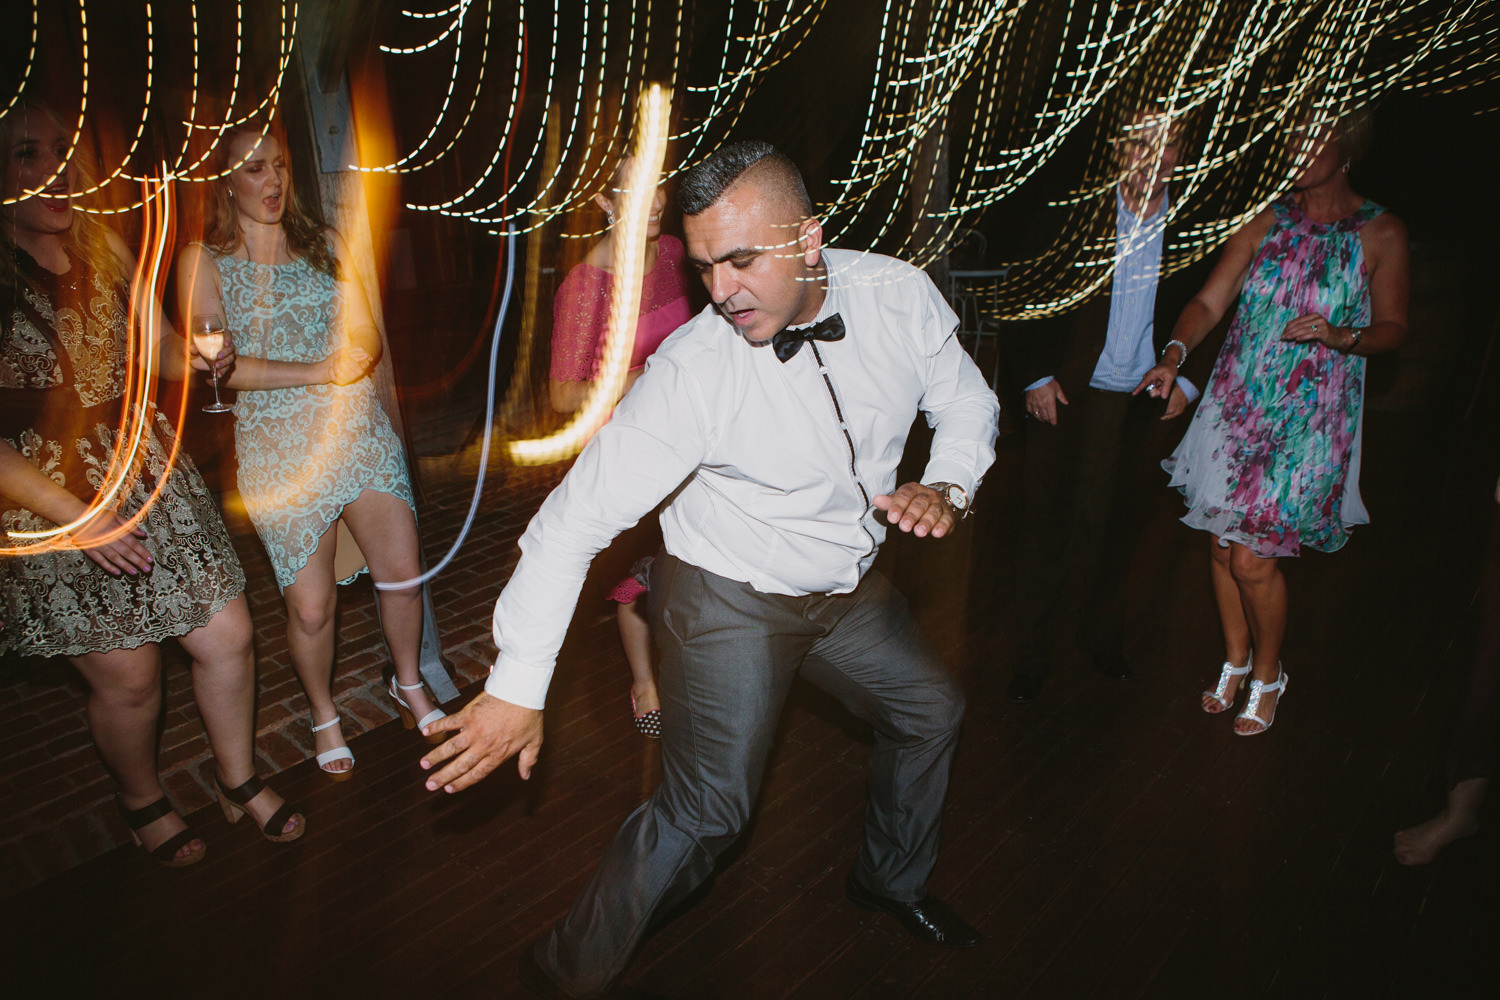 Fun Party Photography at Wedding